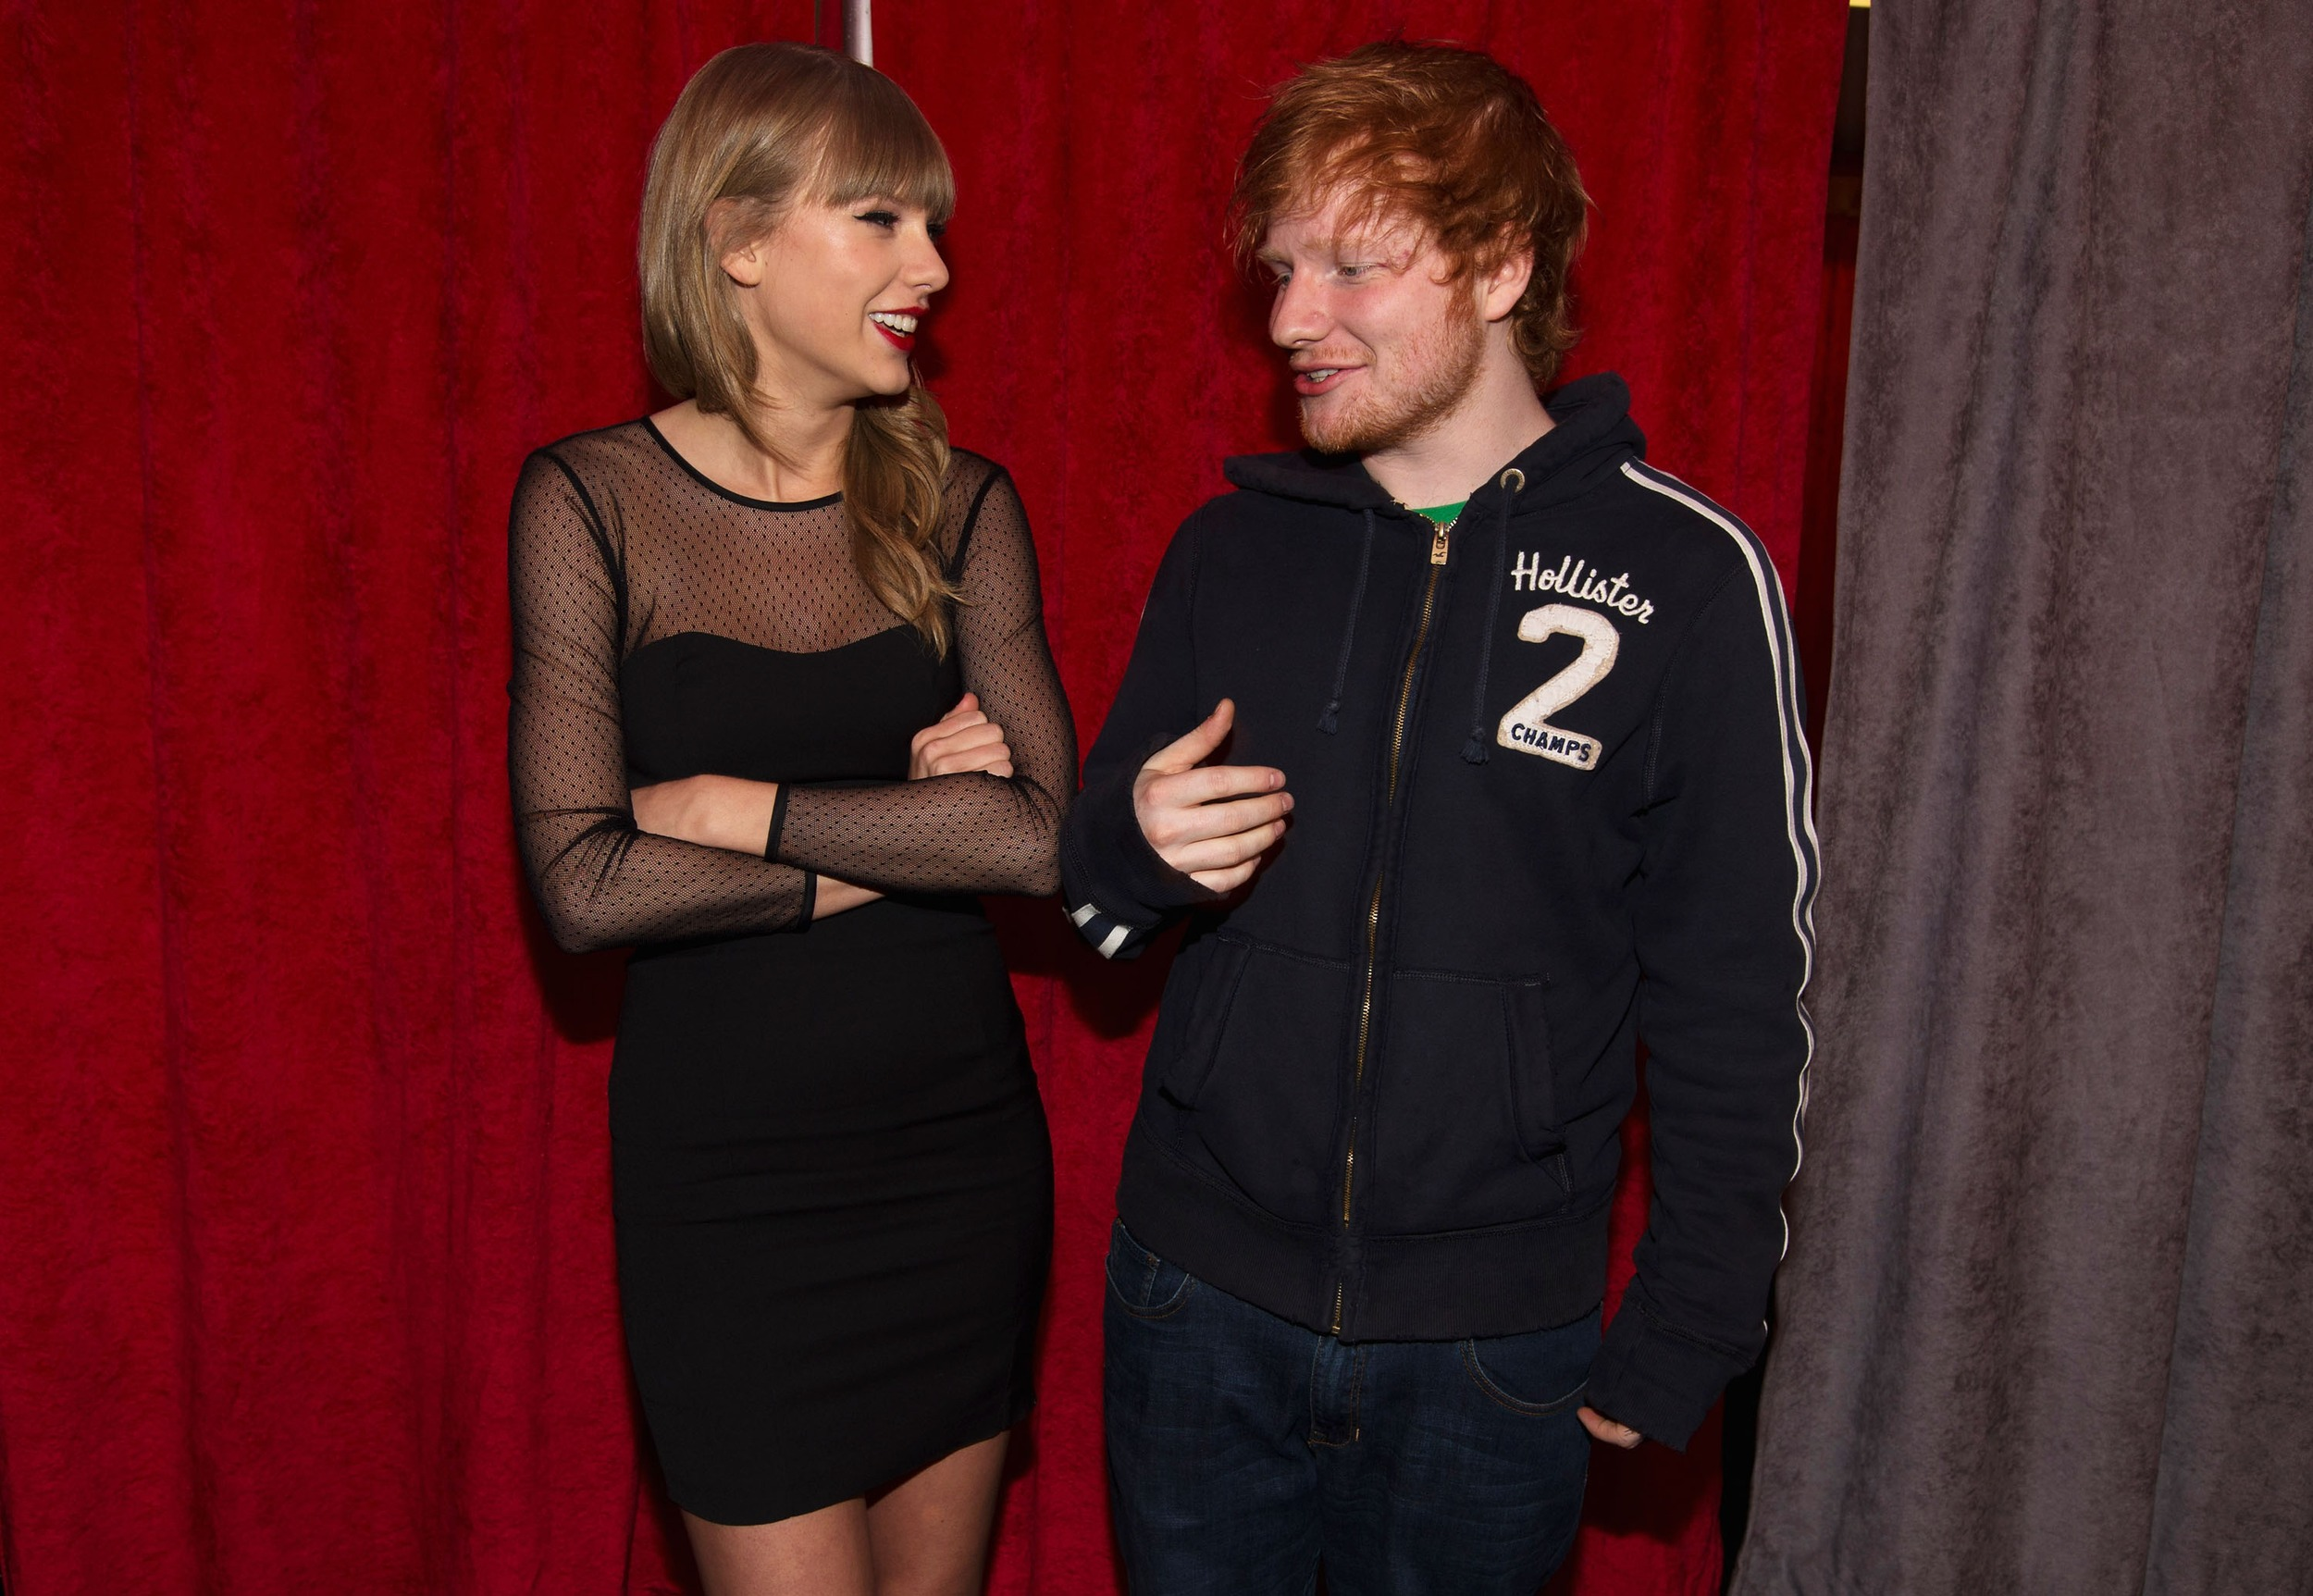 ed sheeran and taylor swift - photo #17